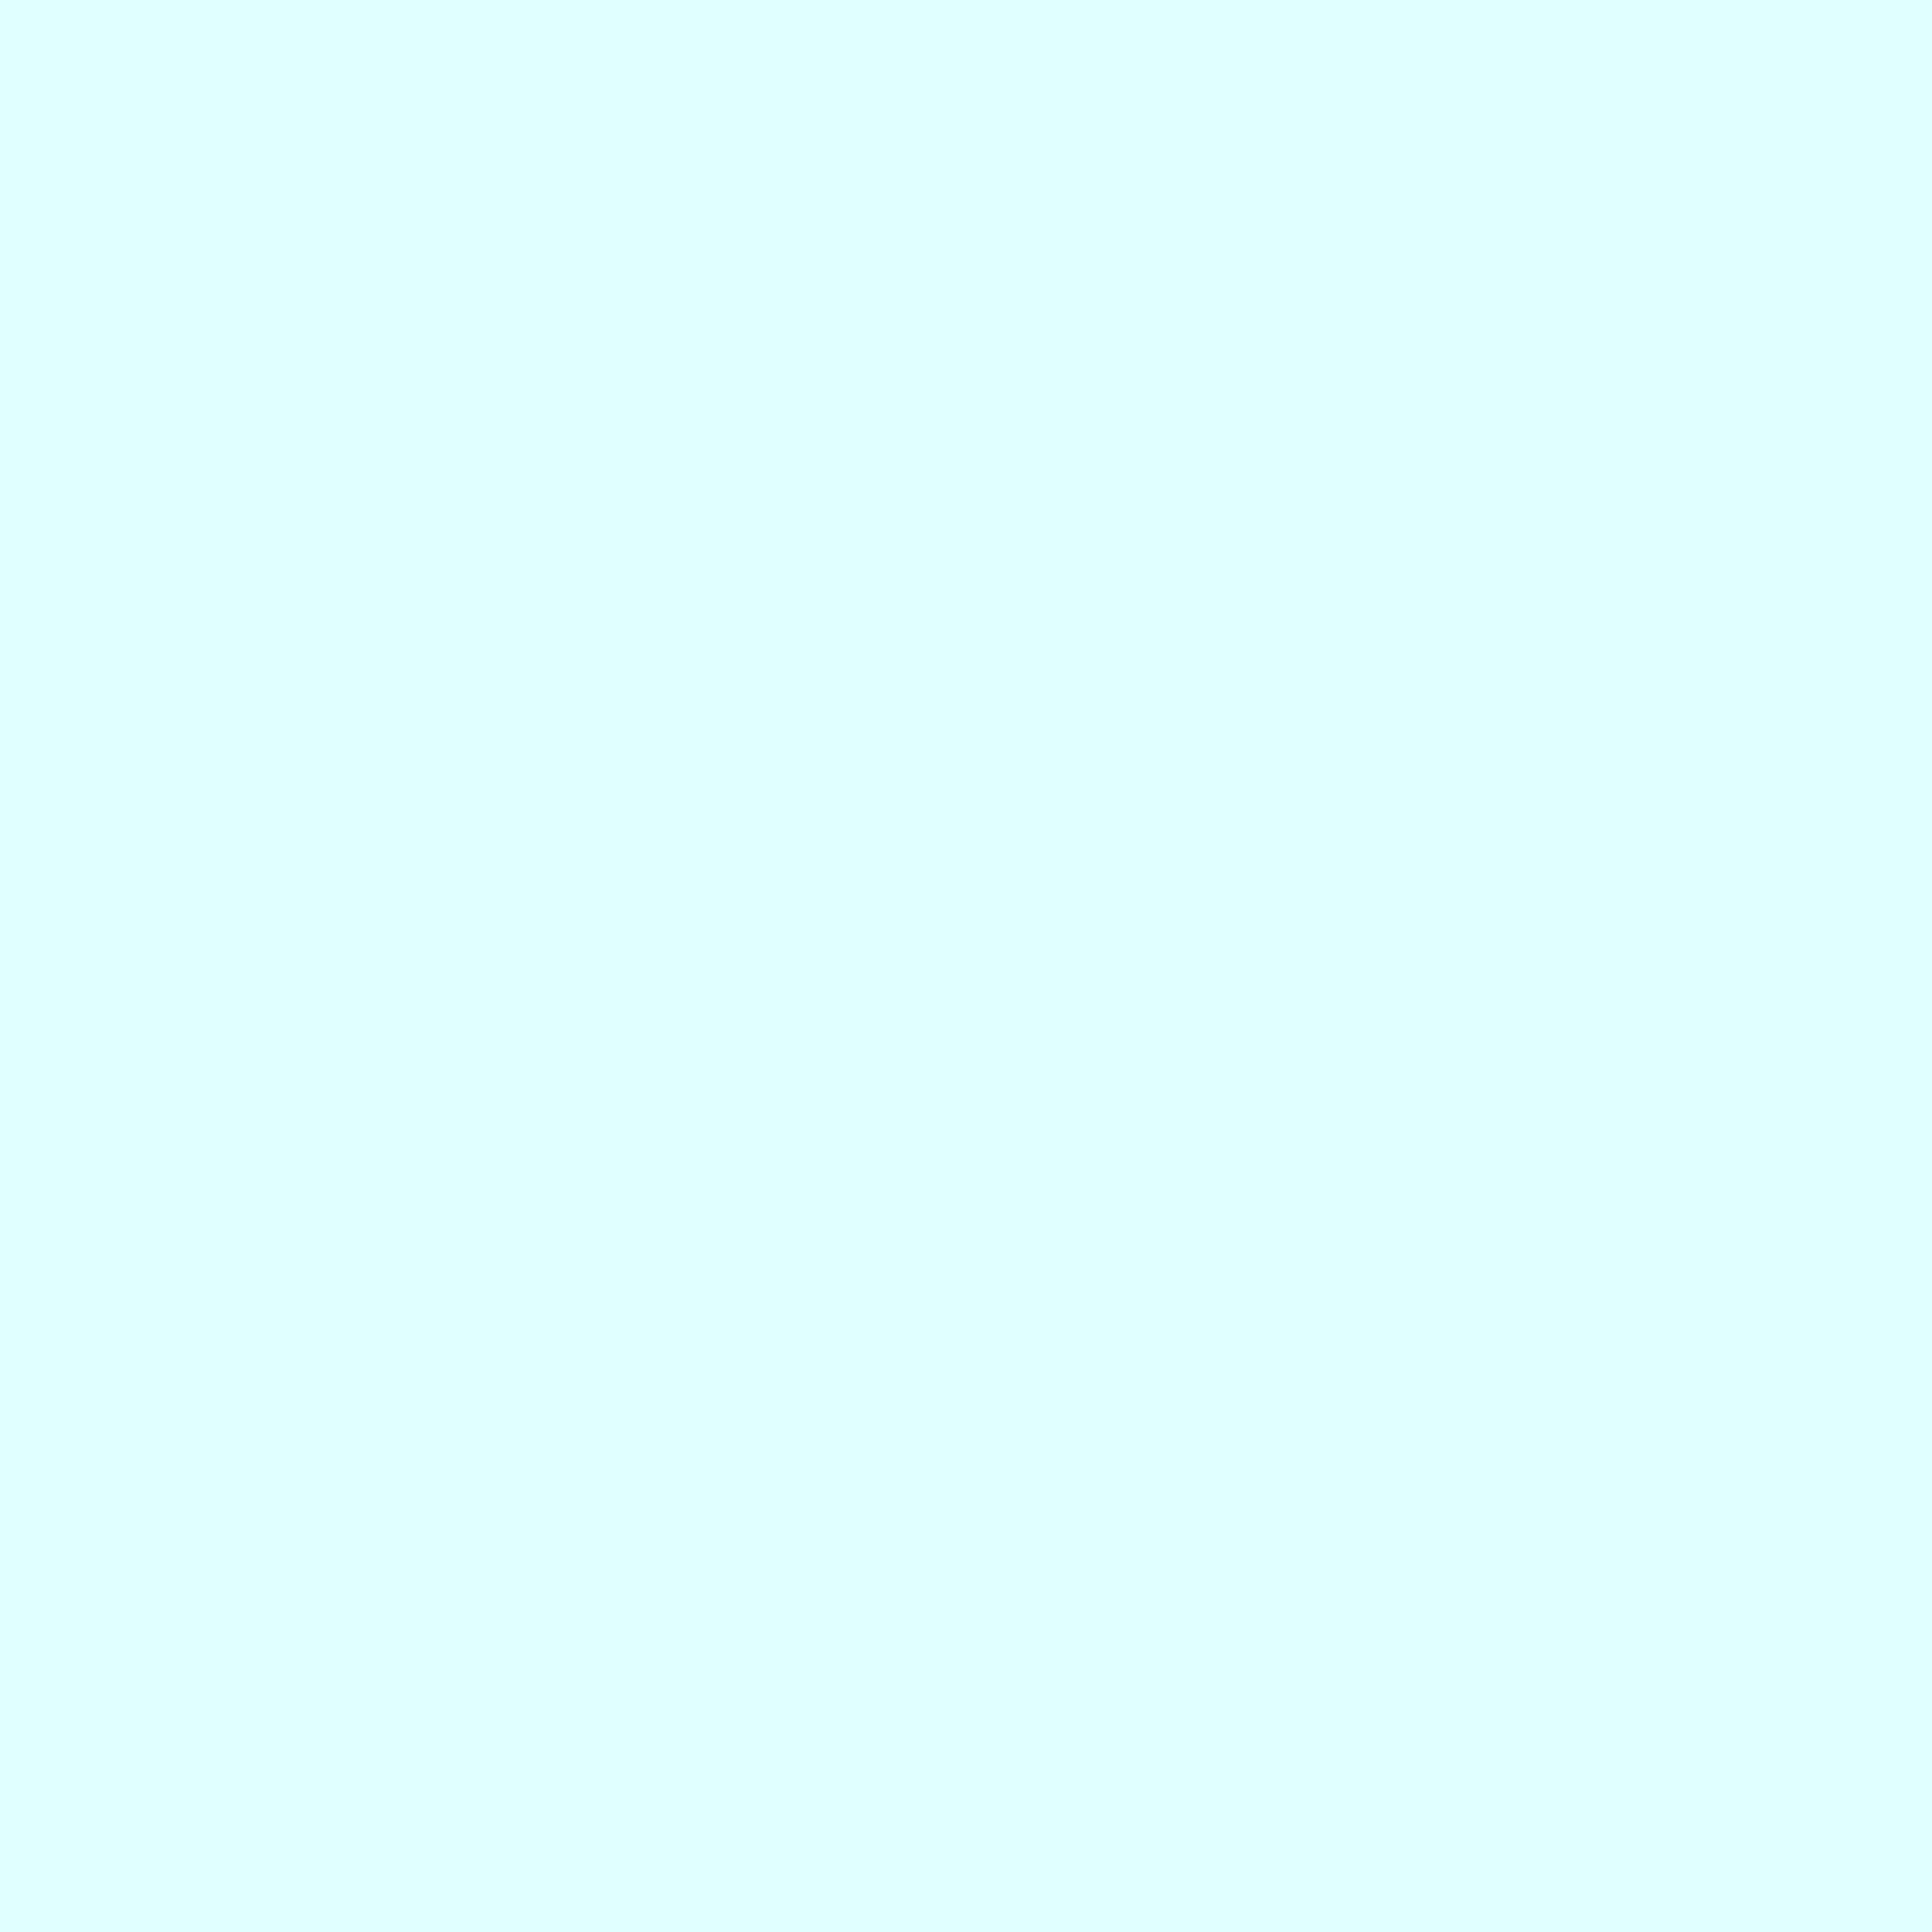 2732x2732 Light Cyan Solid Color Background